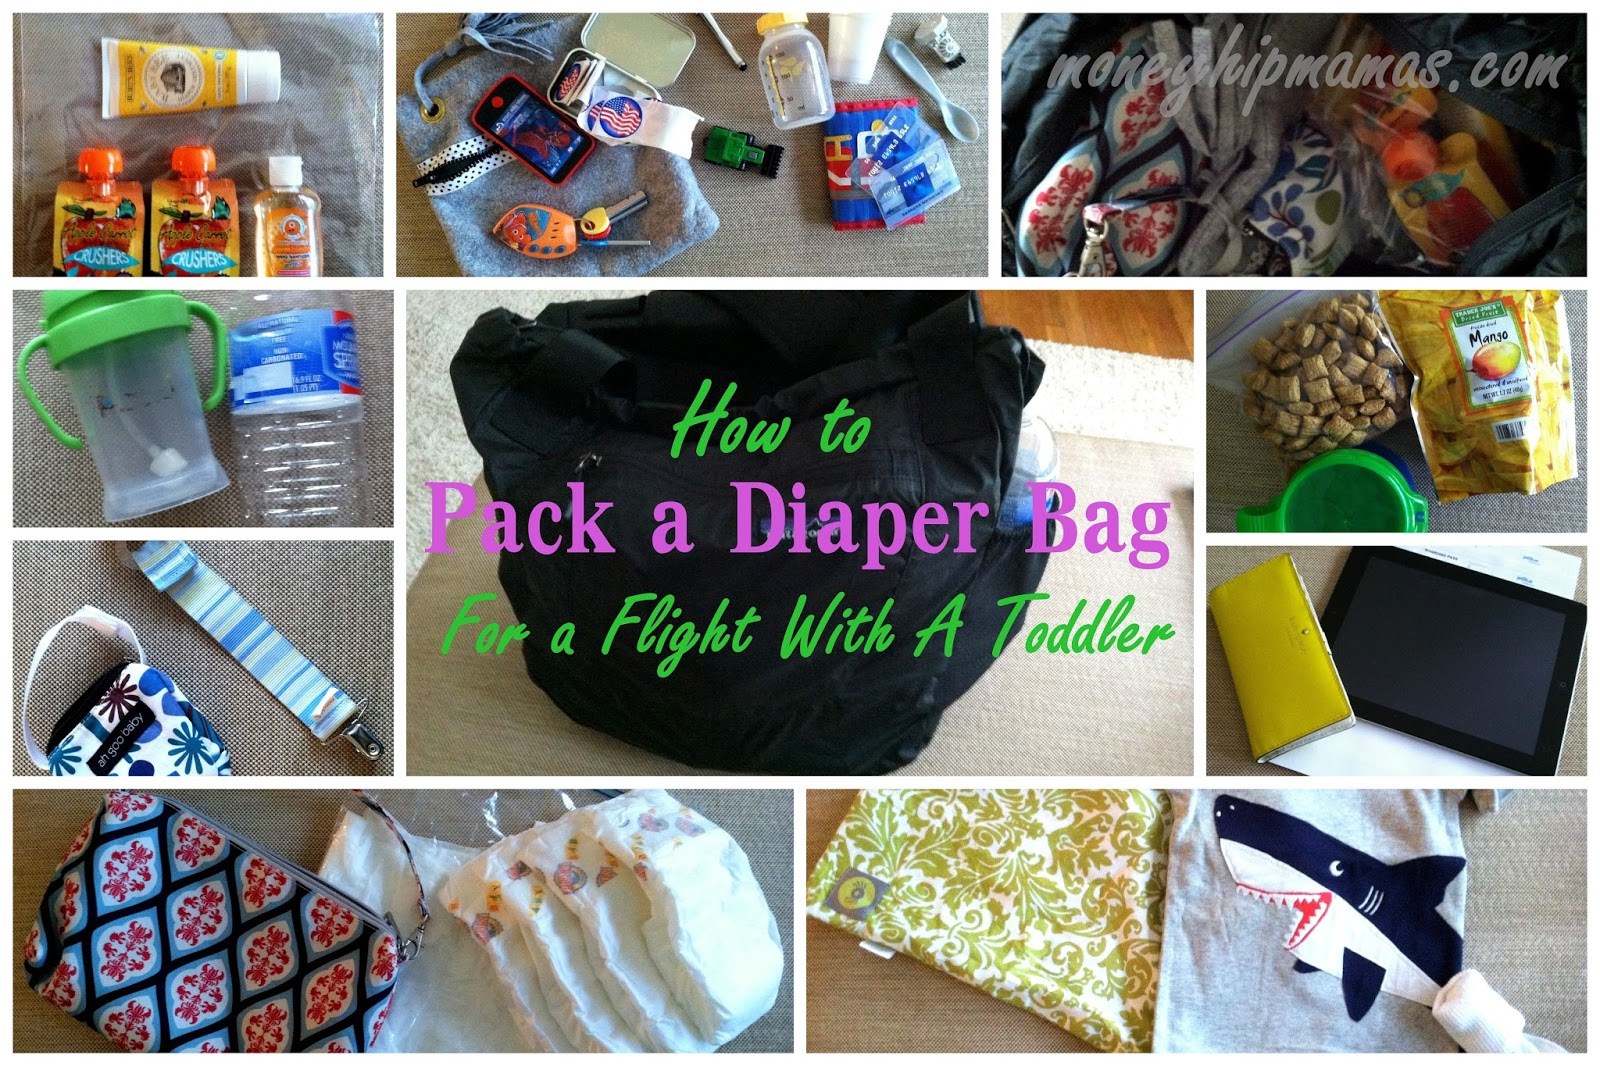 And By How To Pack A Diaper Bag For Flight With Toddler I Really Mean